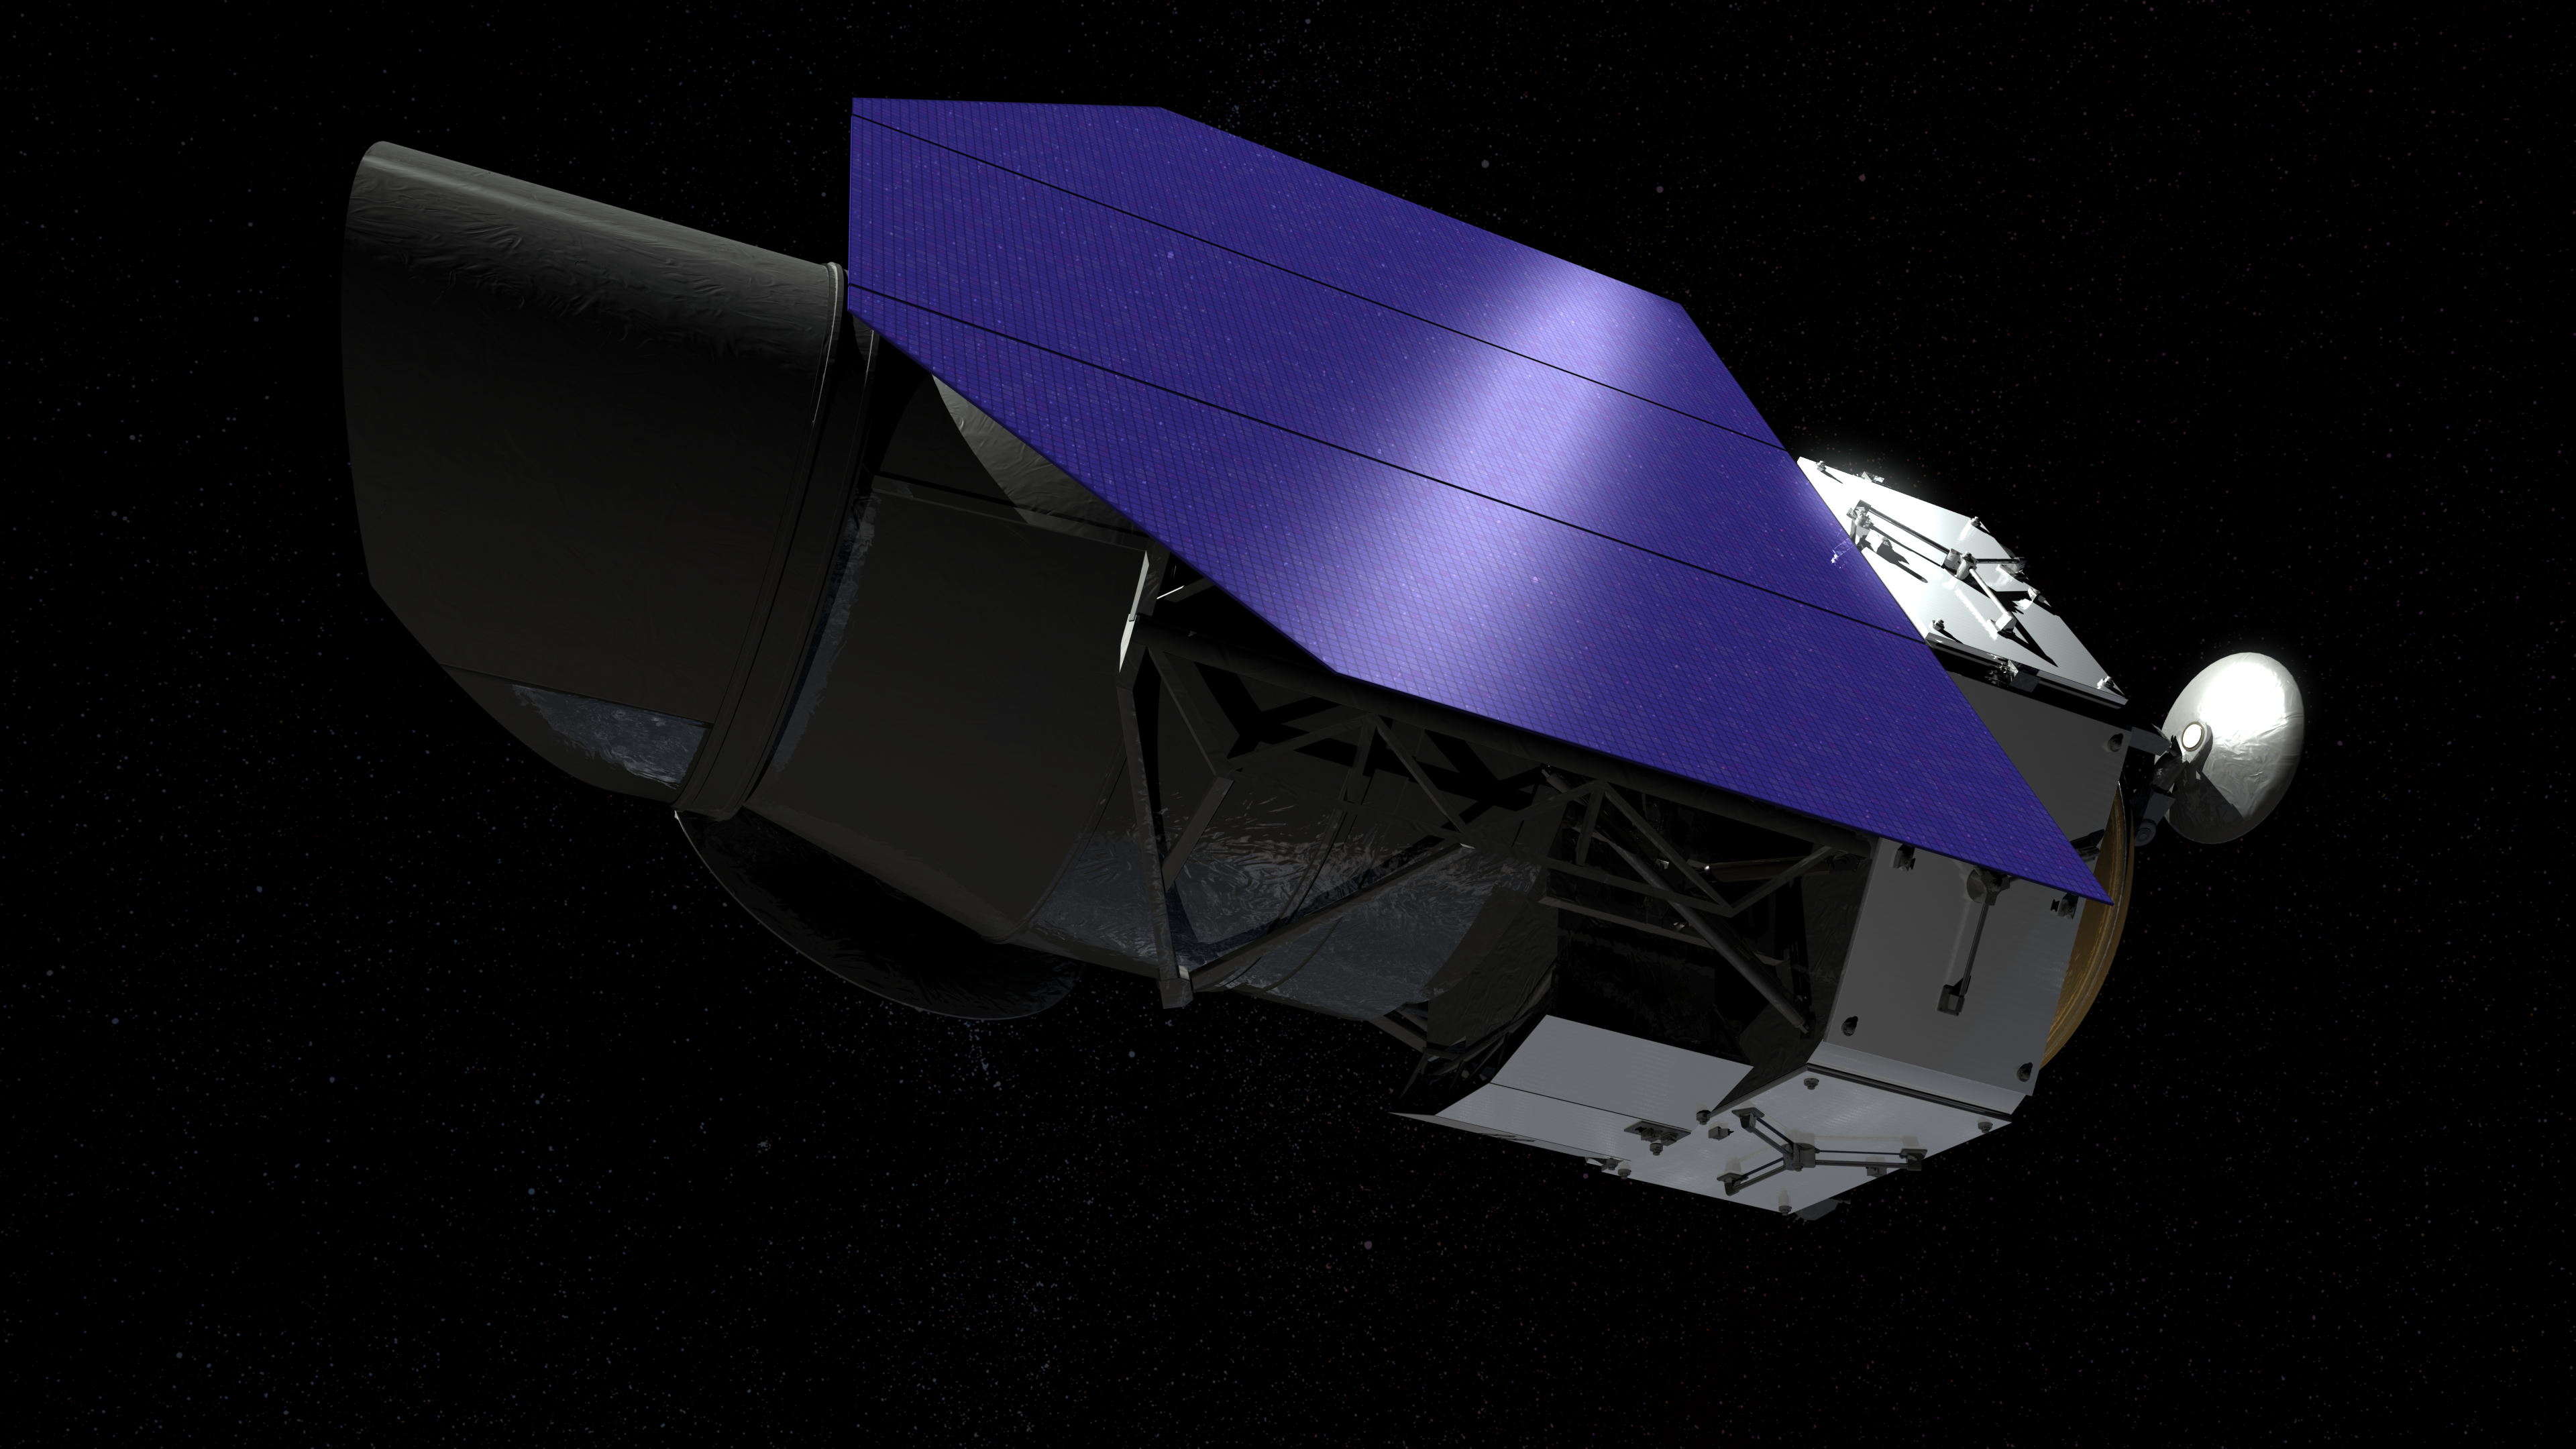 The WFIRST telescope will receive half of the funding requested 71